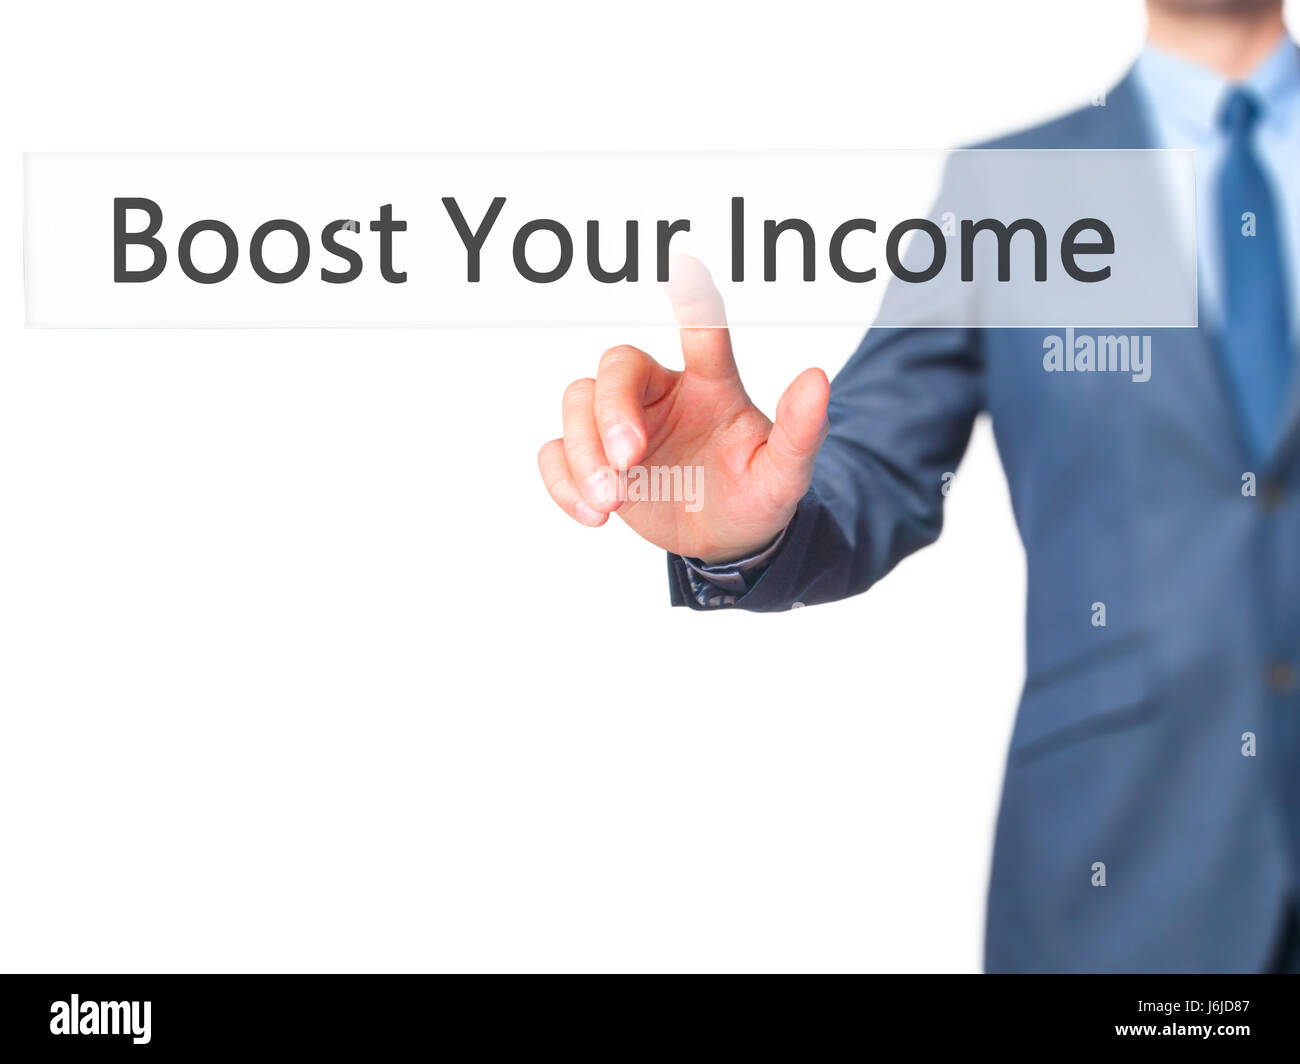 Boost Your Income - Businessman hand touch  button on virtual  screen interface. Business, technology concept. Stock - Stock Image